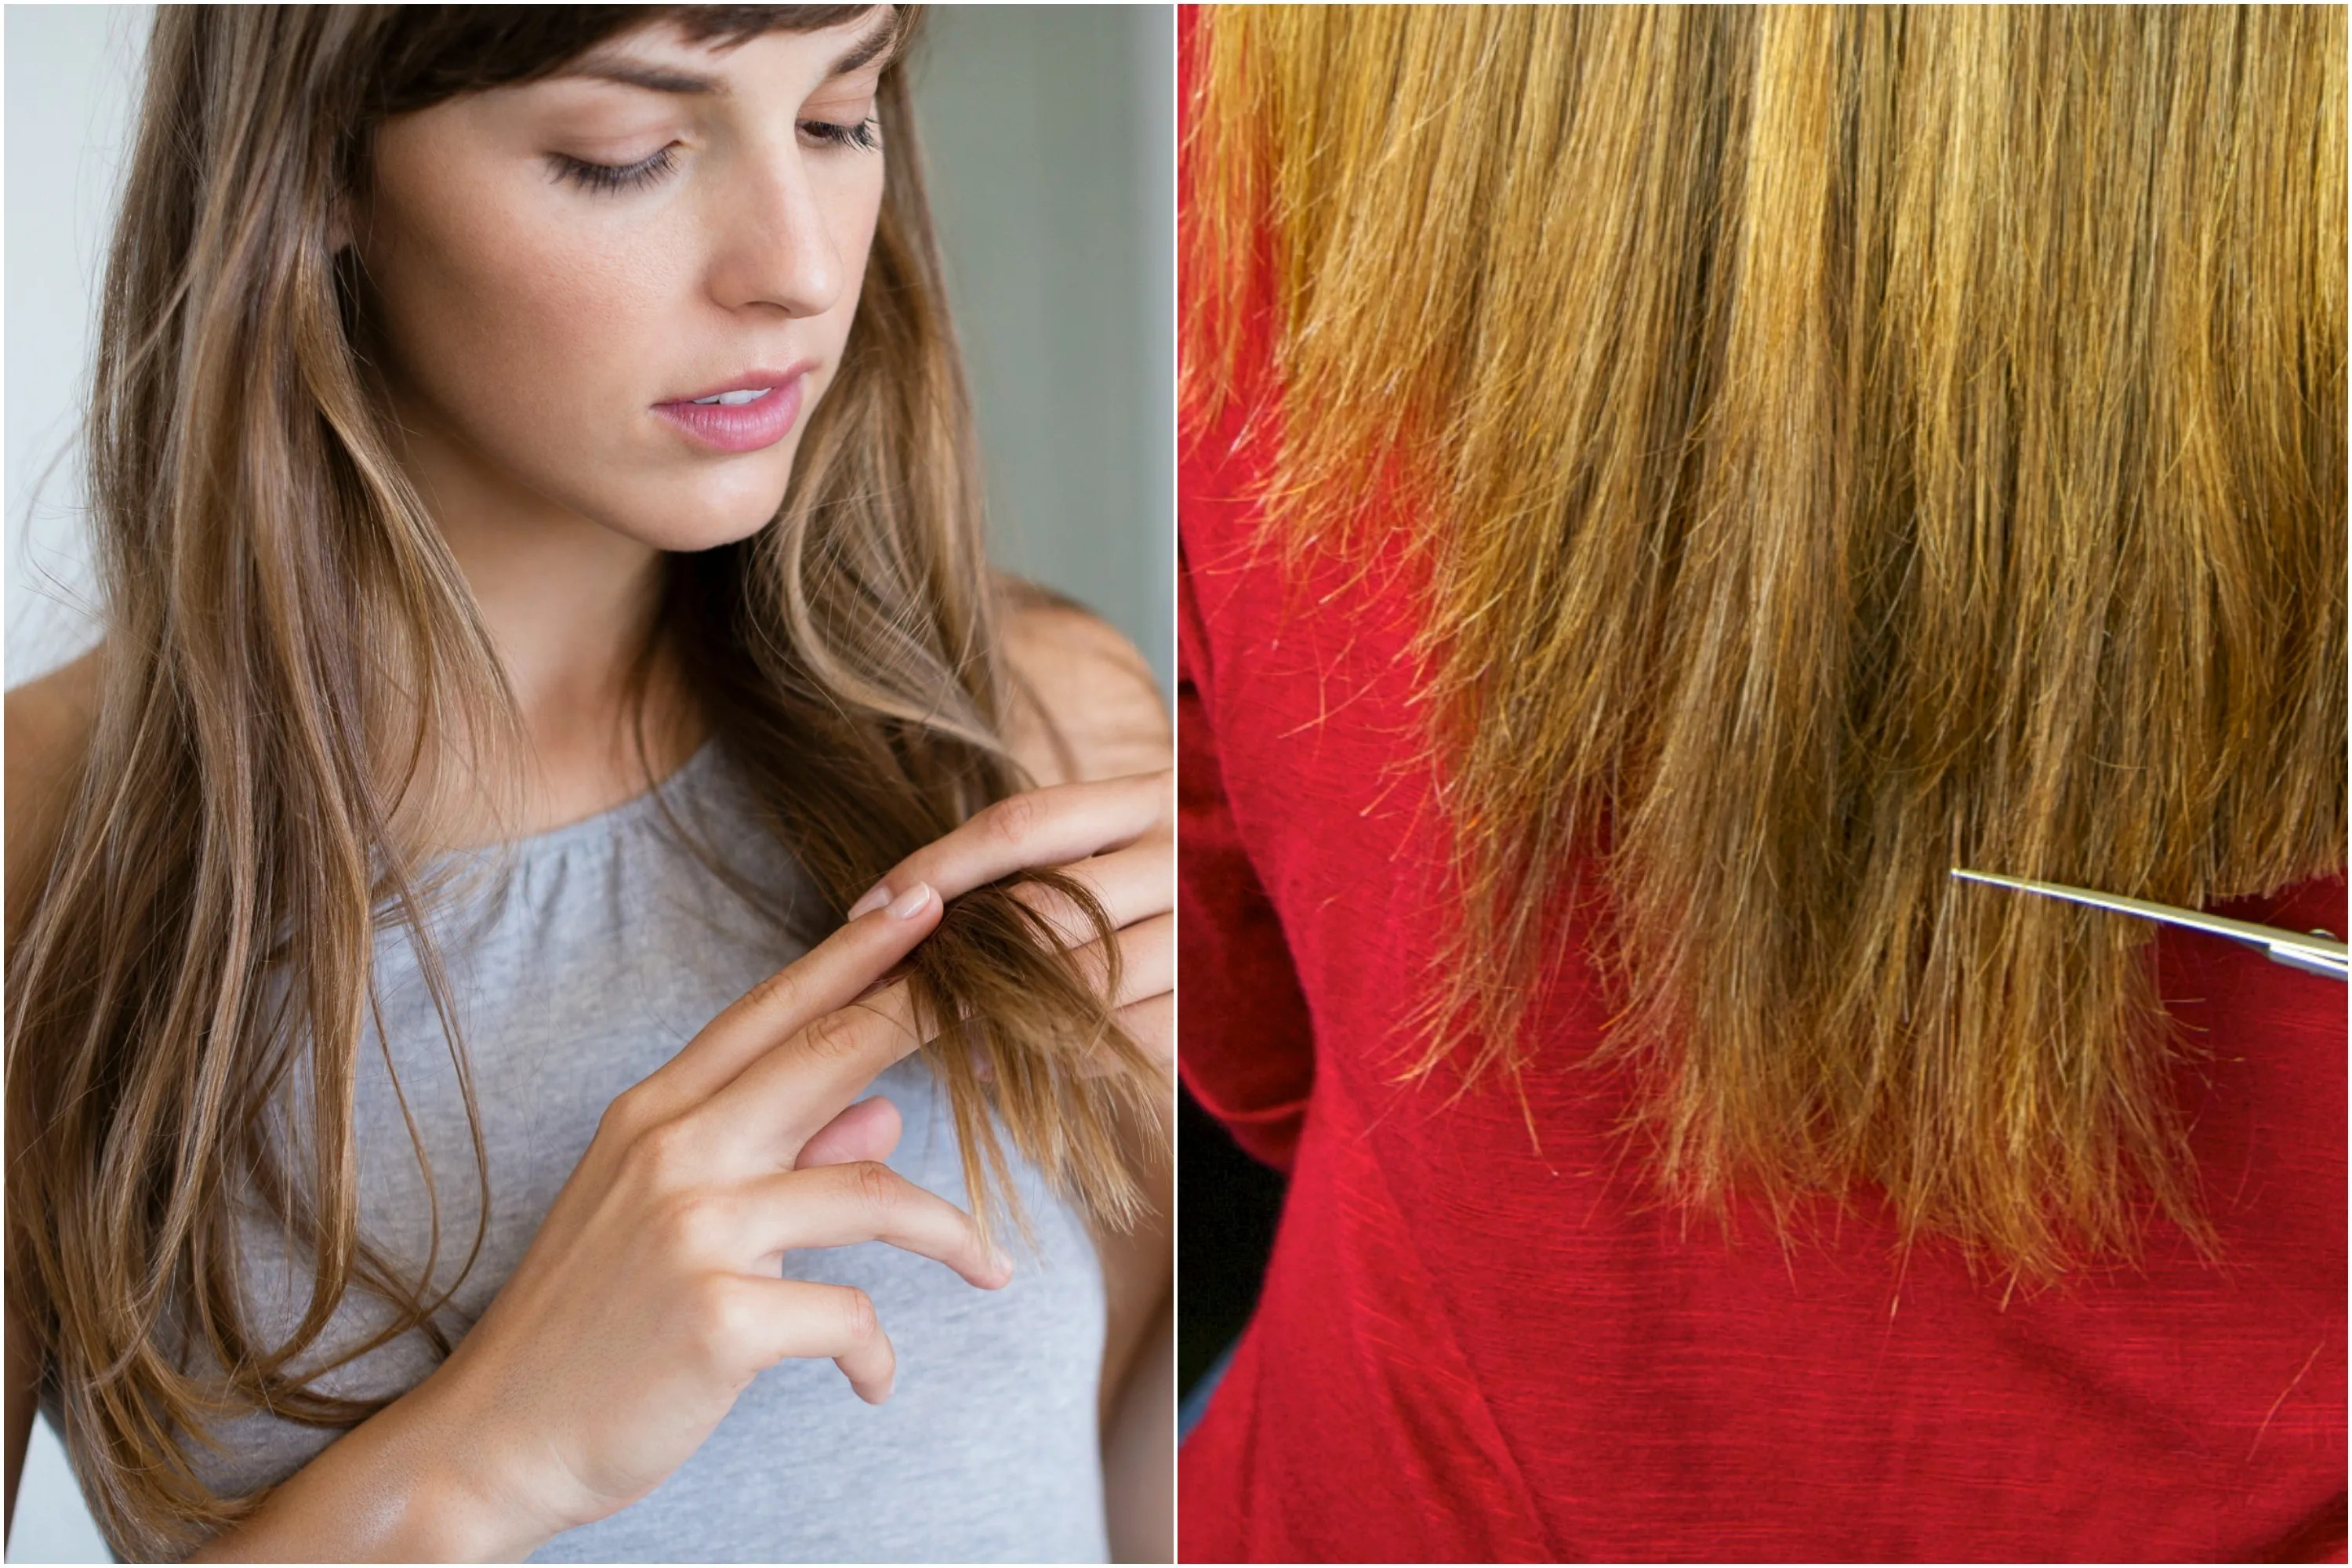 Hair Breakage 10 mon Causes and How to Fix Them